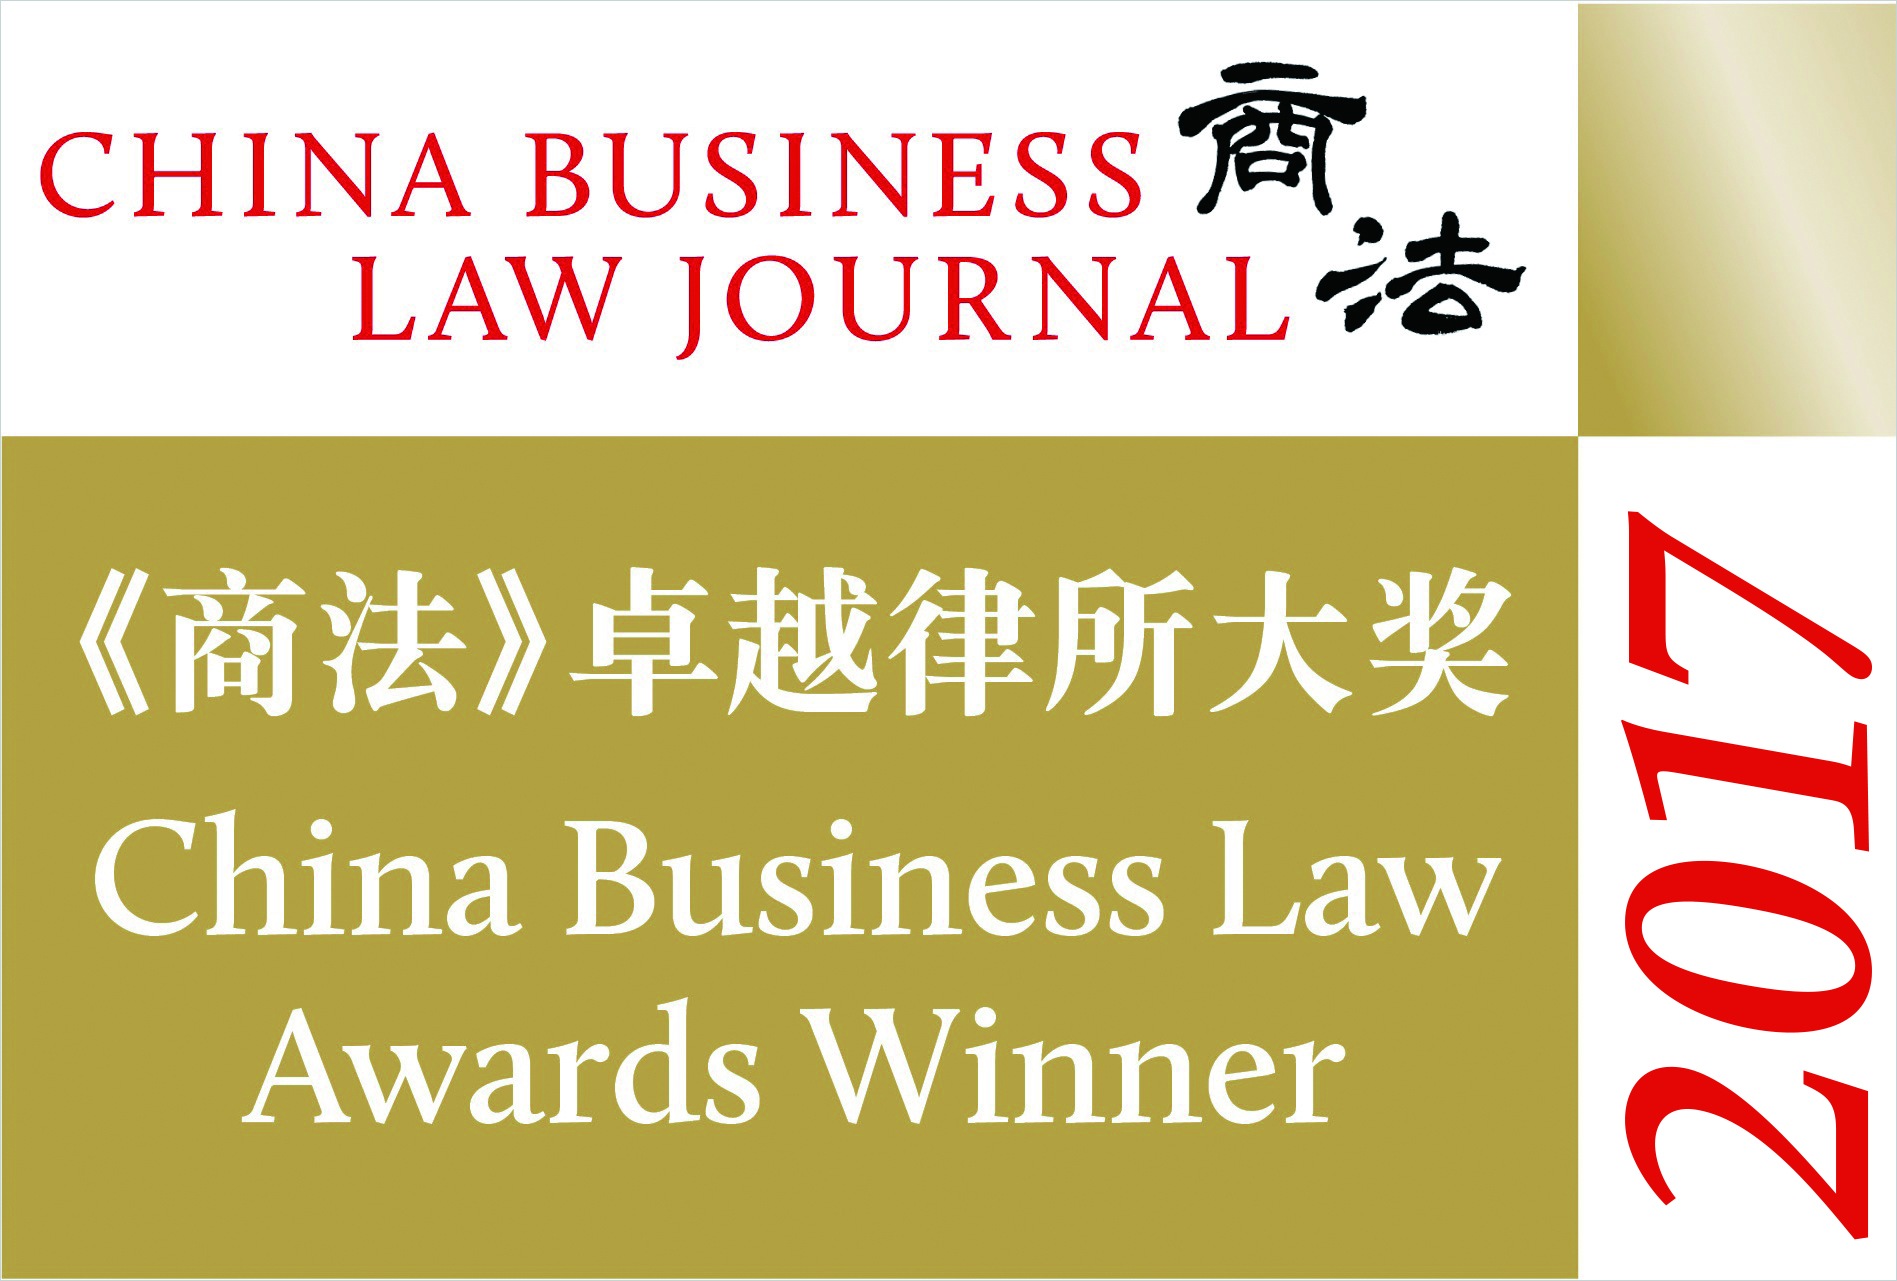 China Business Law Awards